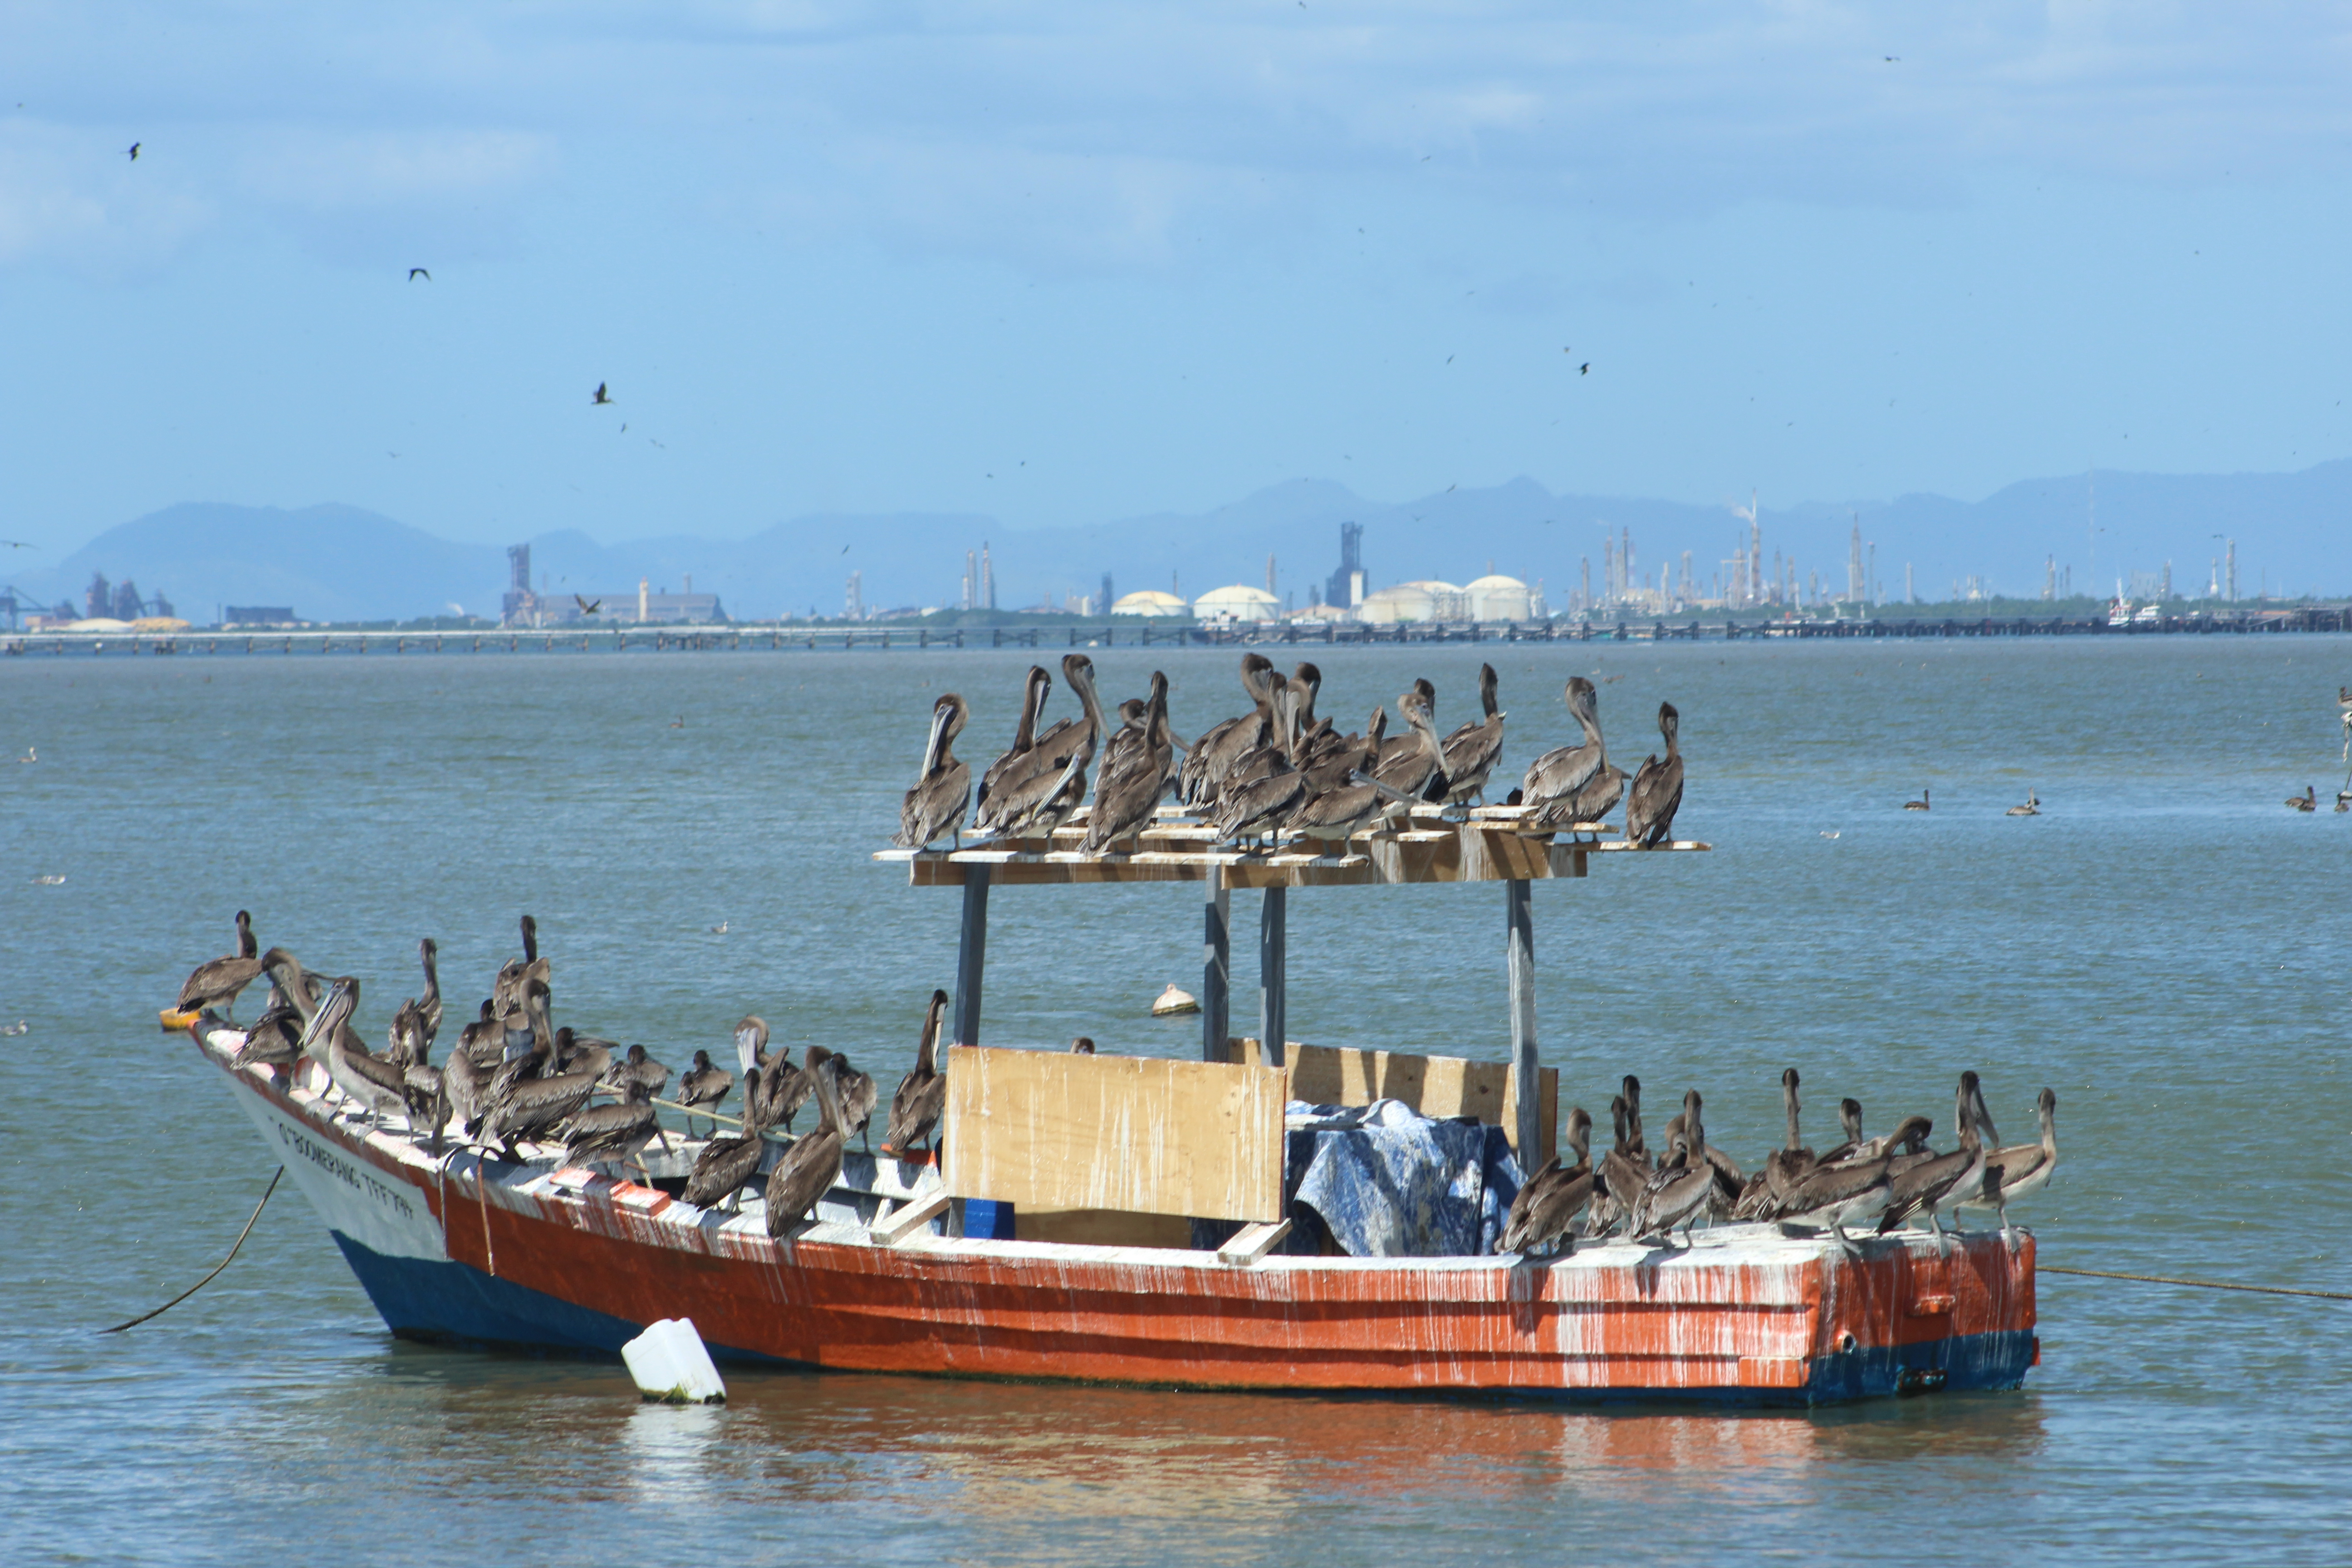 Pelicans on Boat.